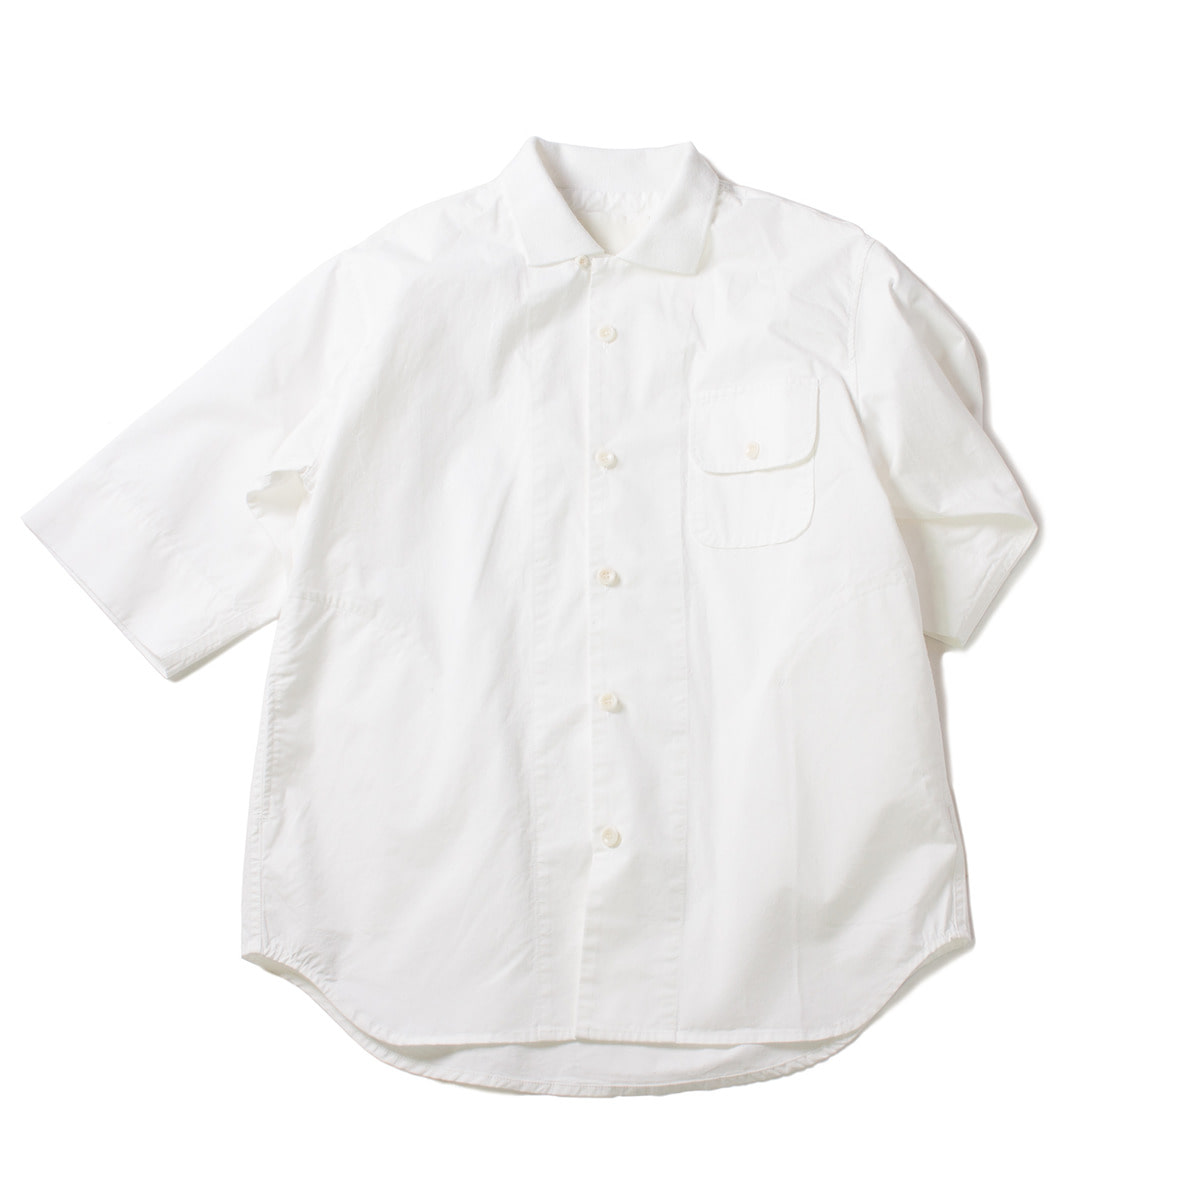 [DOCUMENT] M123 CAFRI SHIRT 'WHITE'